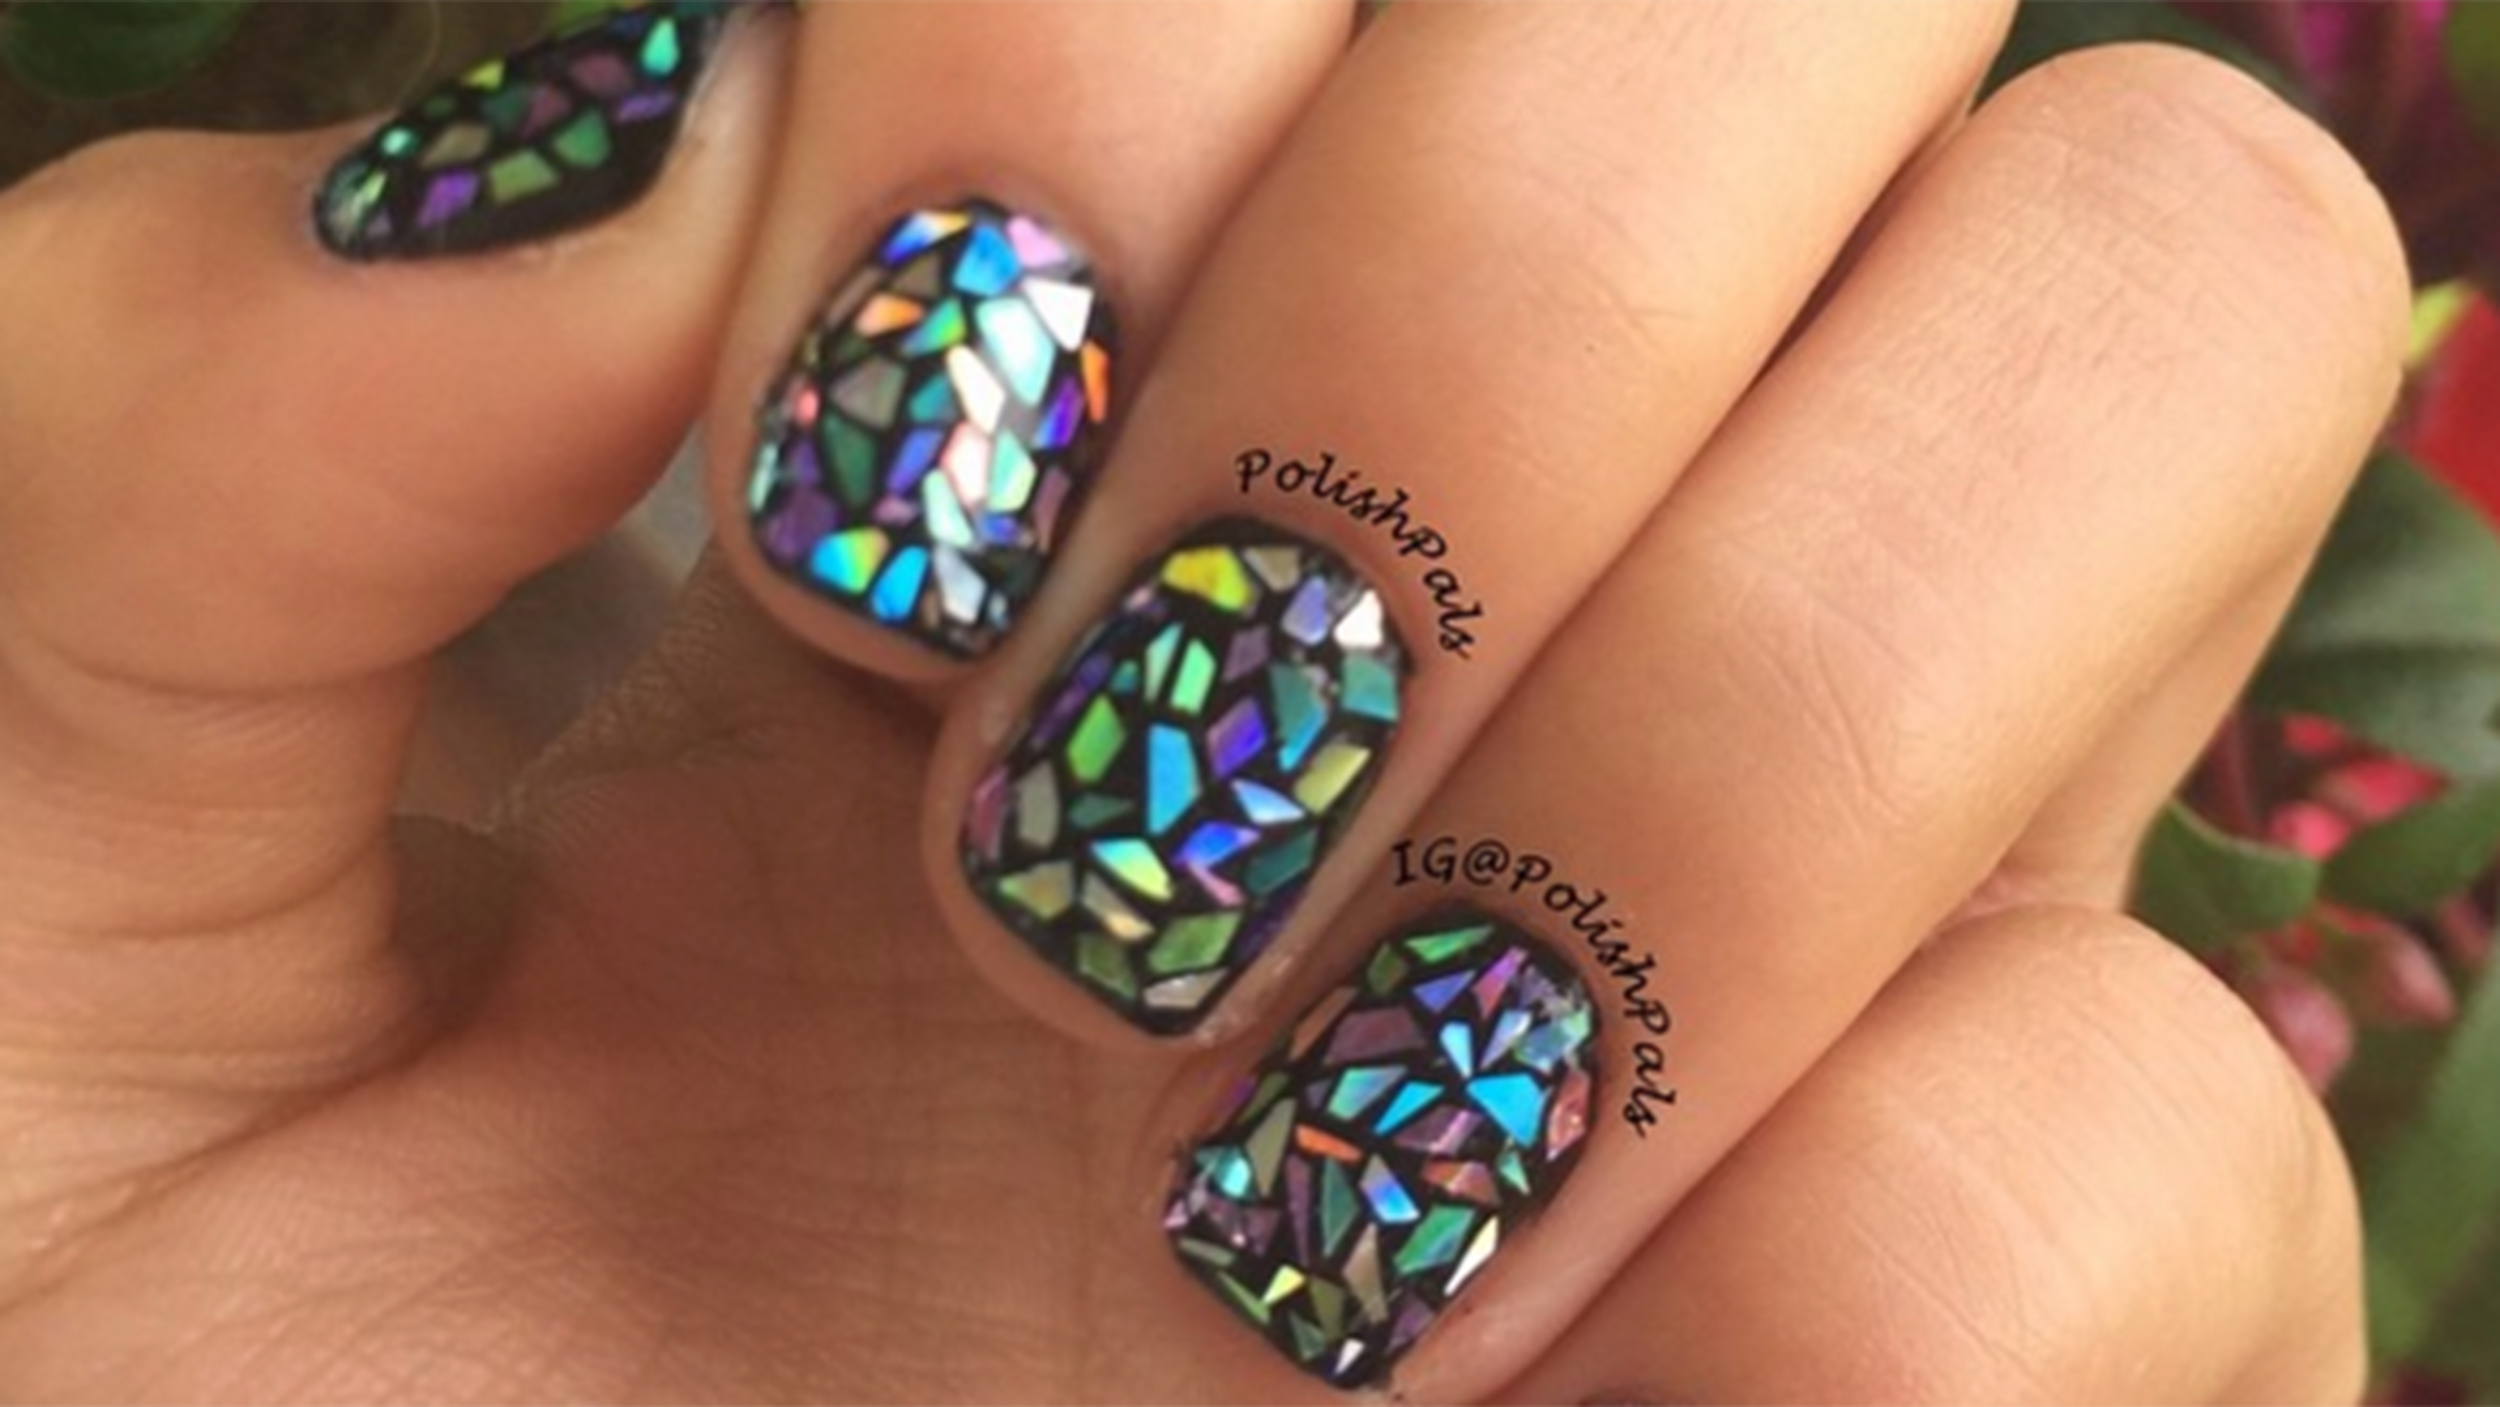 Shattered glass nail art is the hottest trend on the internet shattered glass nail art is the hottest trend on the internet today prinsesfo Gallery